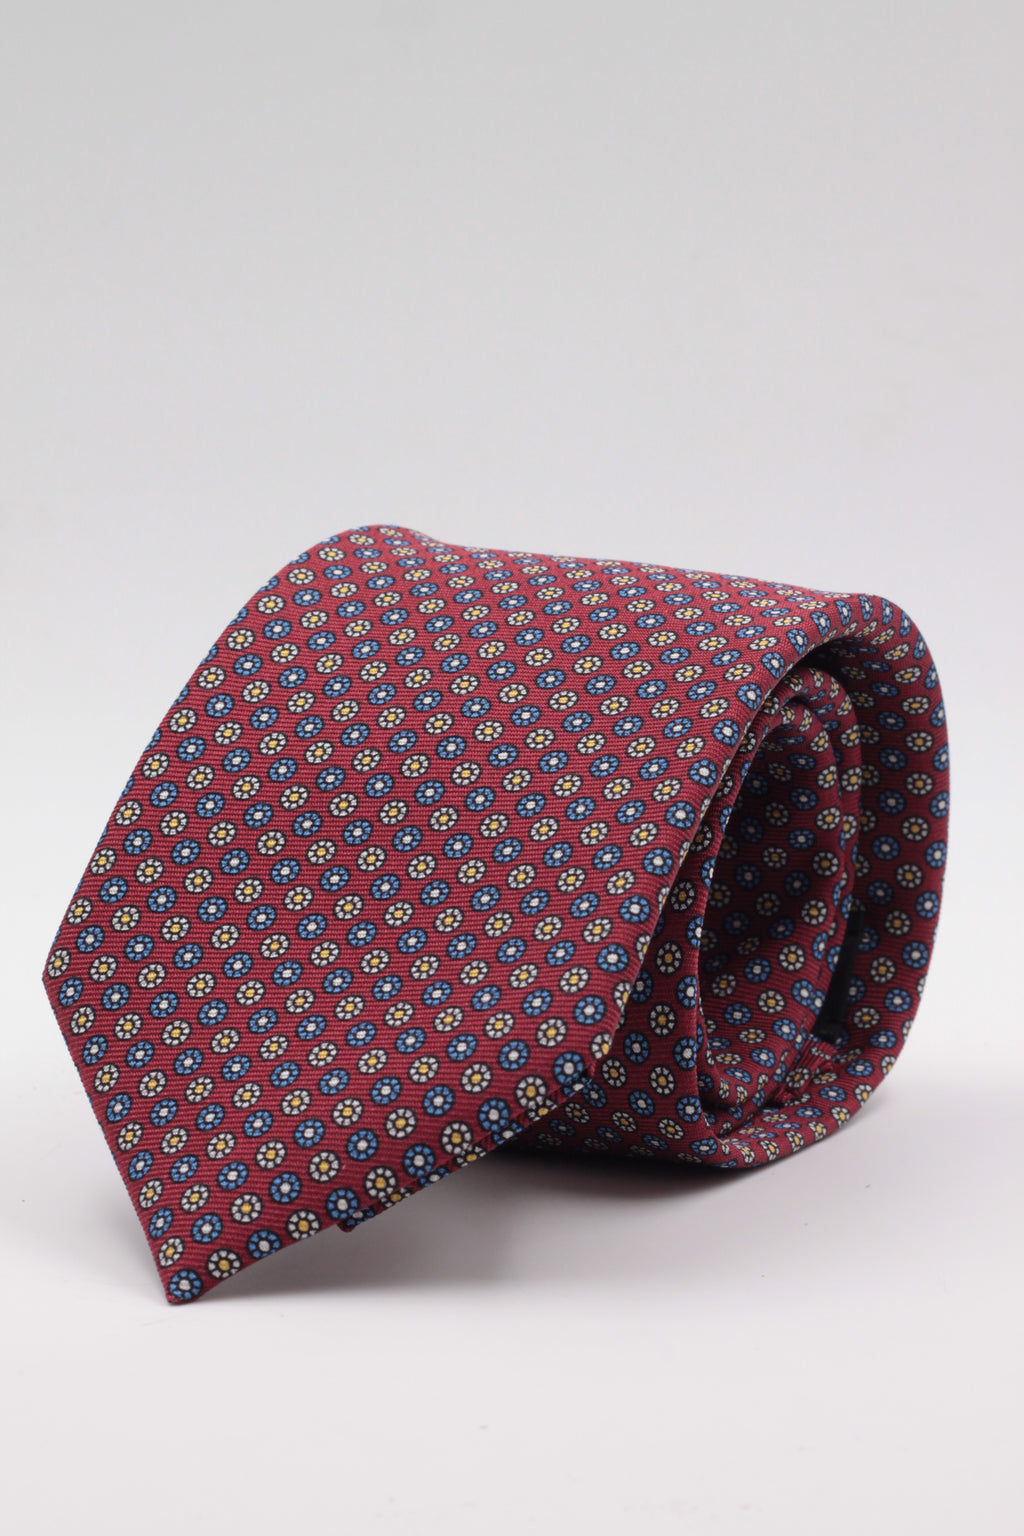 Burgundy, white and turquoise floral motif tie